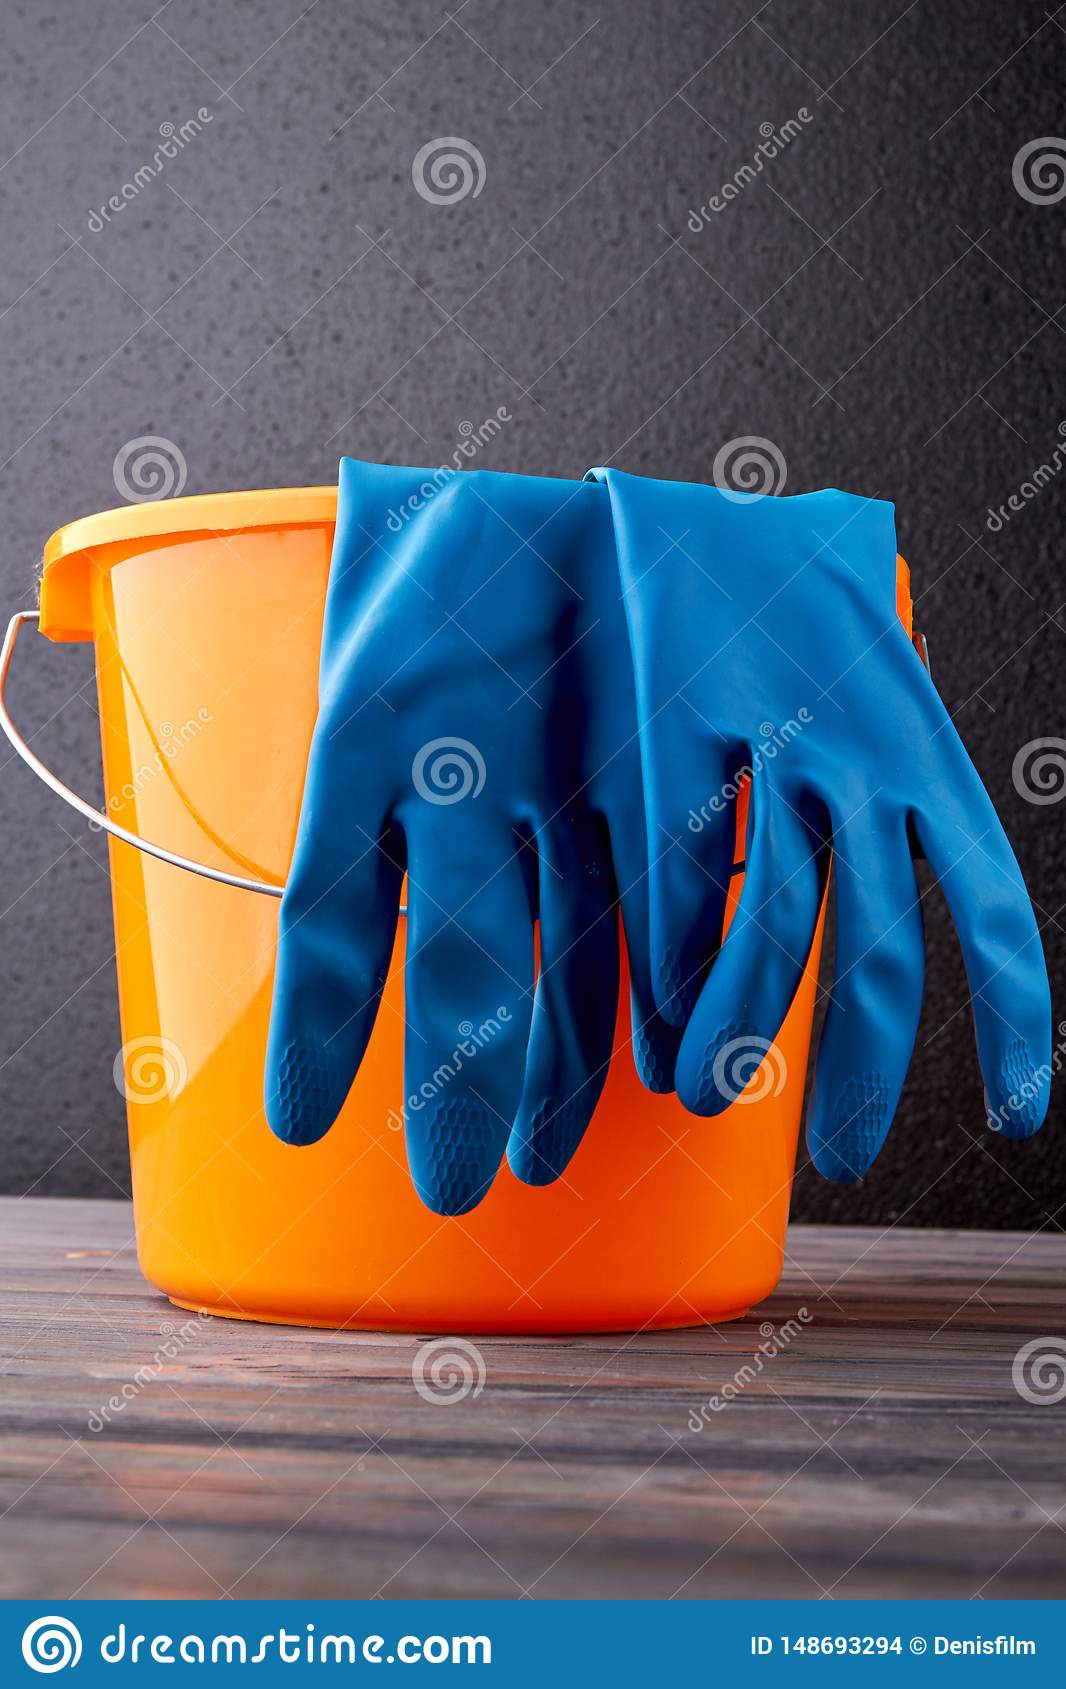 Bucket And Gloves For Cleaning On Dark Background. Stock ...